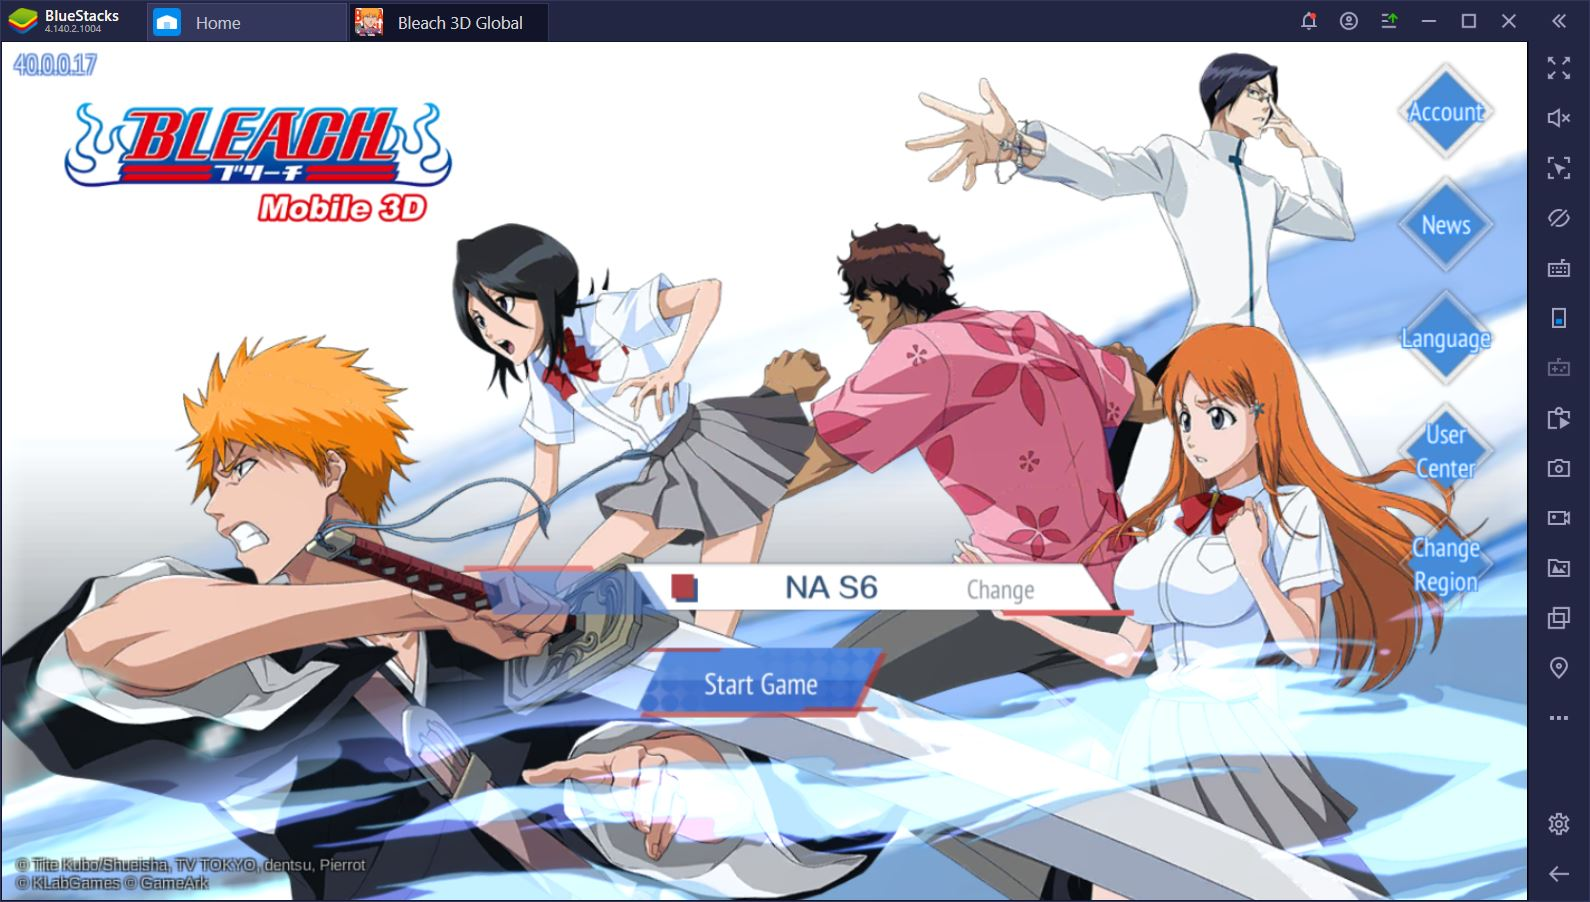 How to Play BLEACH Mobile 3D on PC with BlueStacks Img 1